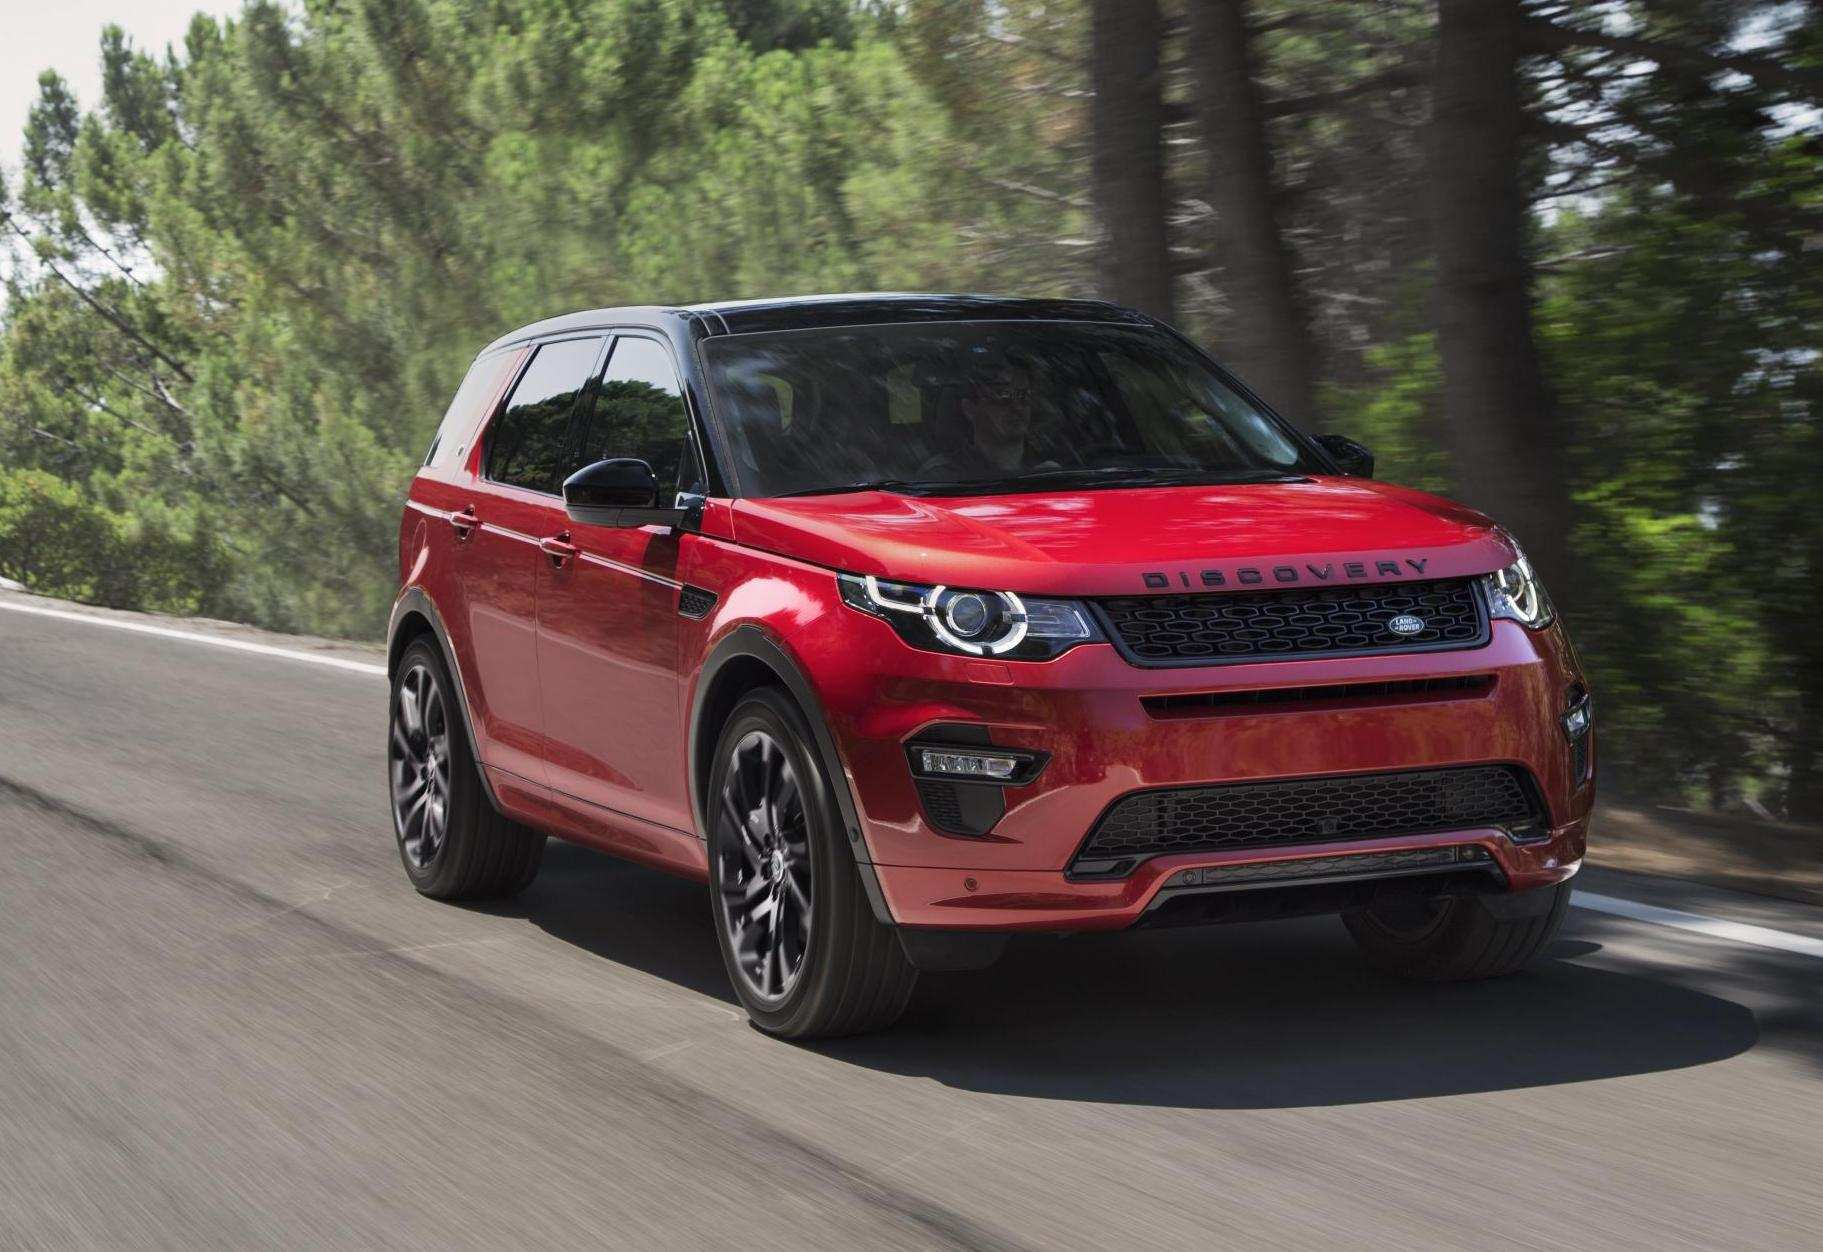 35 A 2020 Land Rover Discovery Sport Price Design And Review